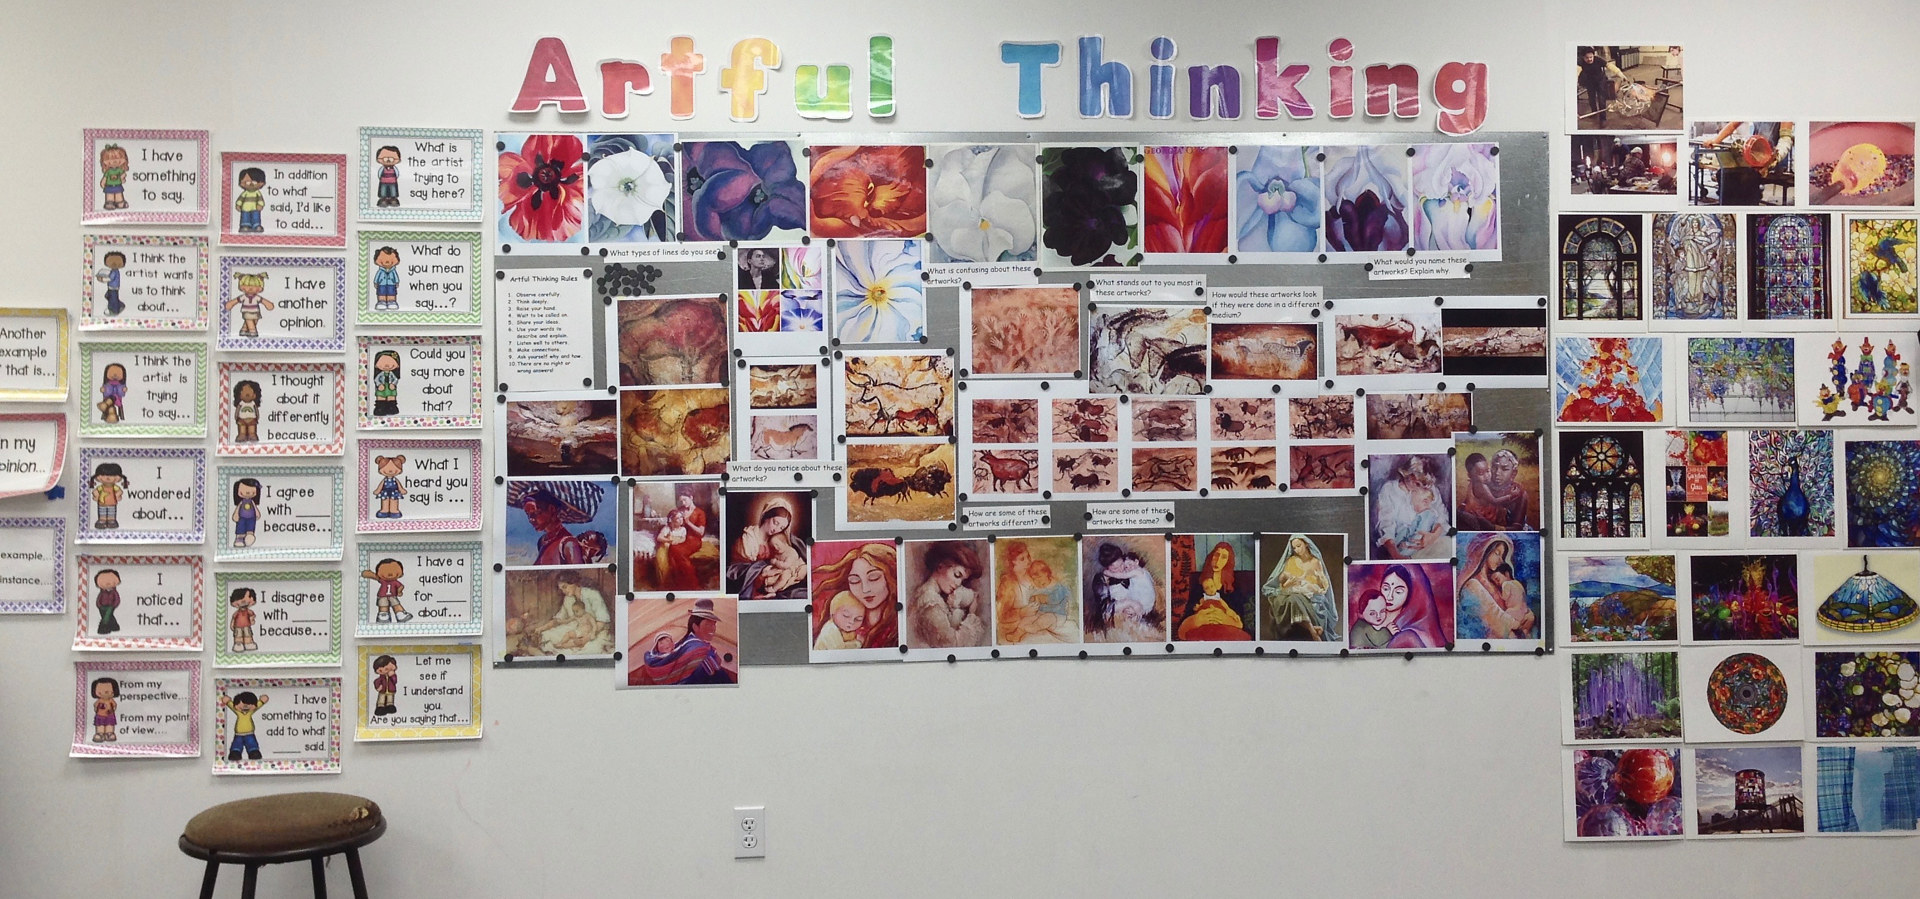 Artful/Visual Thinking Board in a designated Art Room (2017) by Linnie (Victoria) Aikens Lindsay